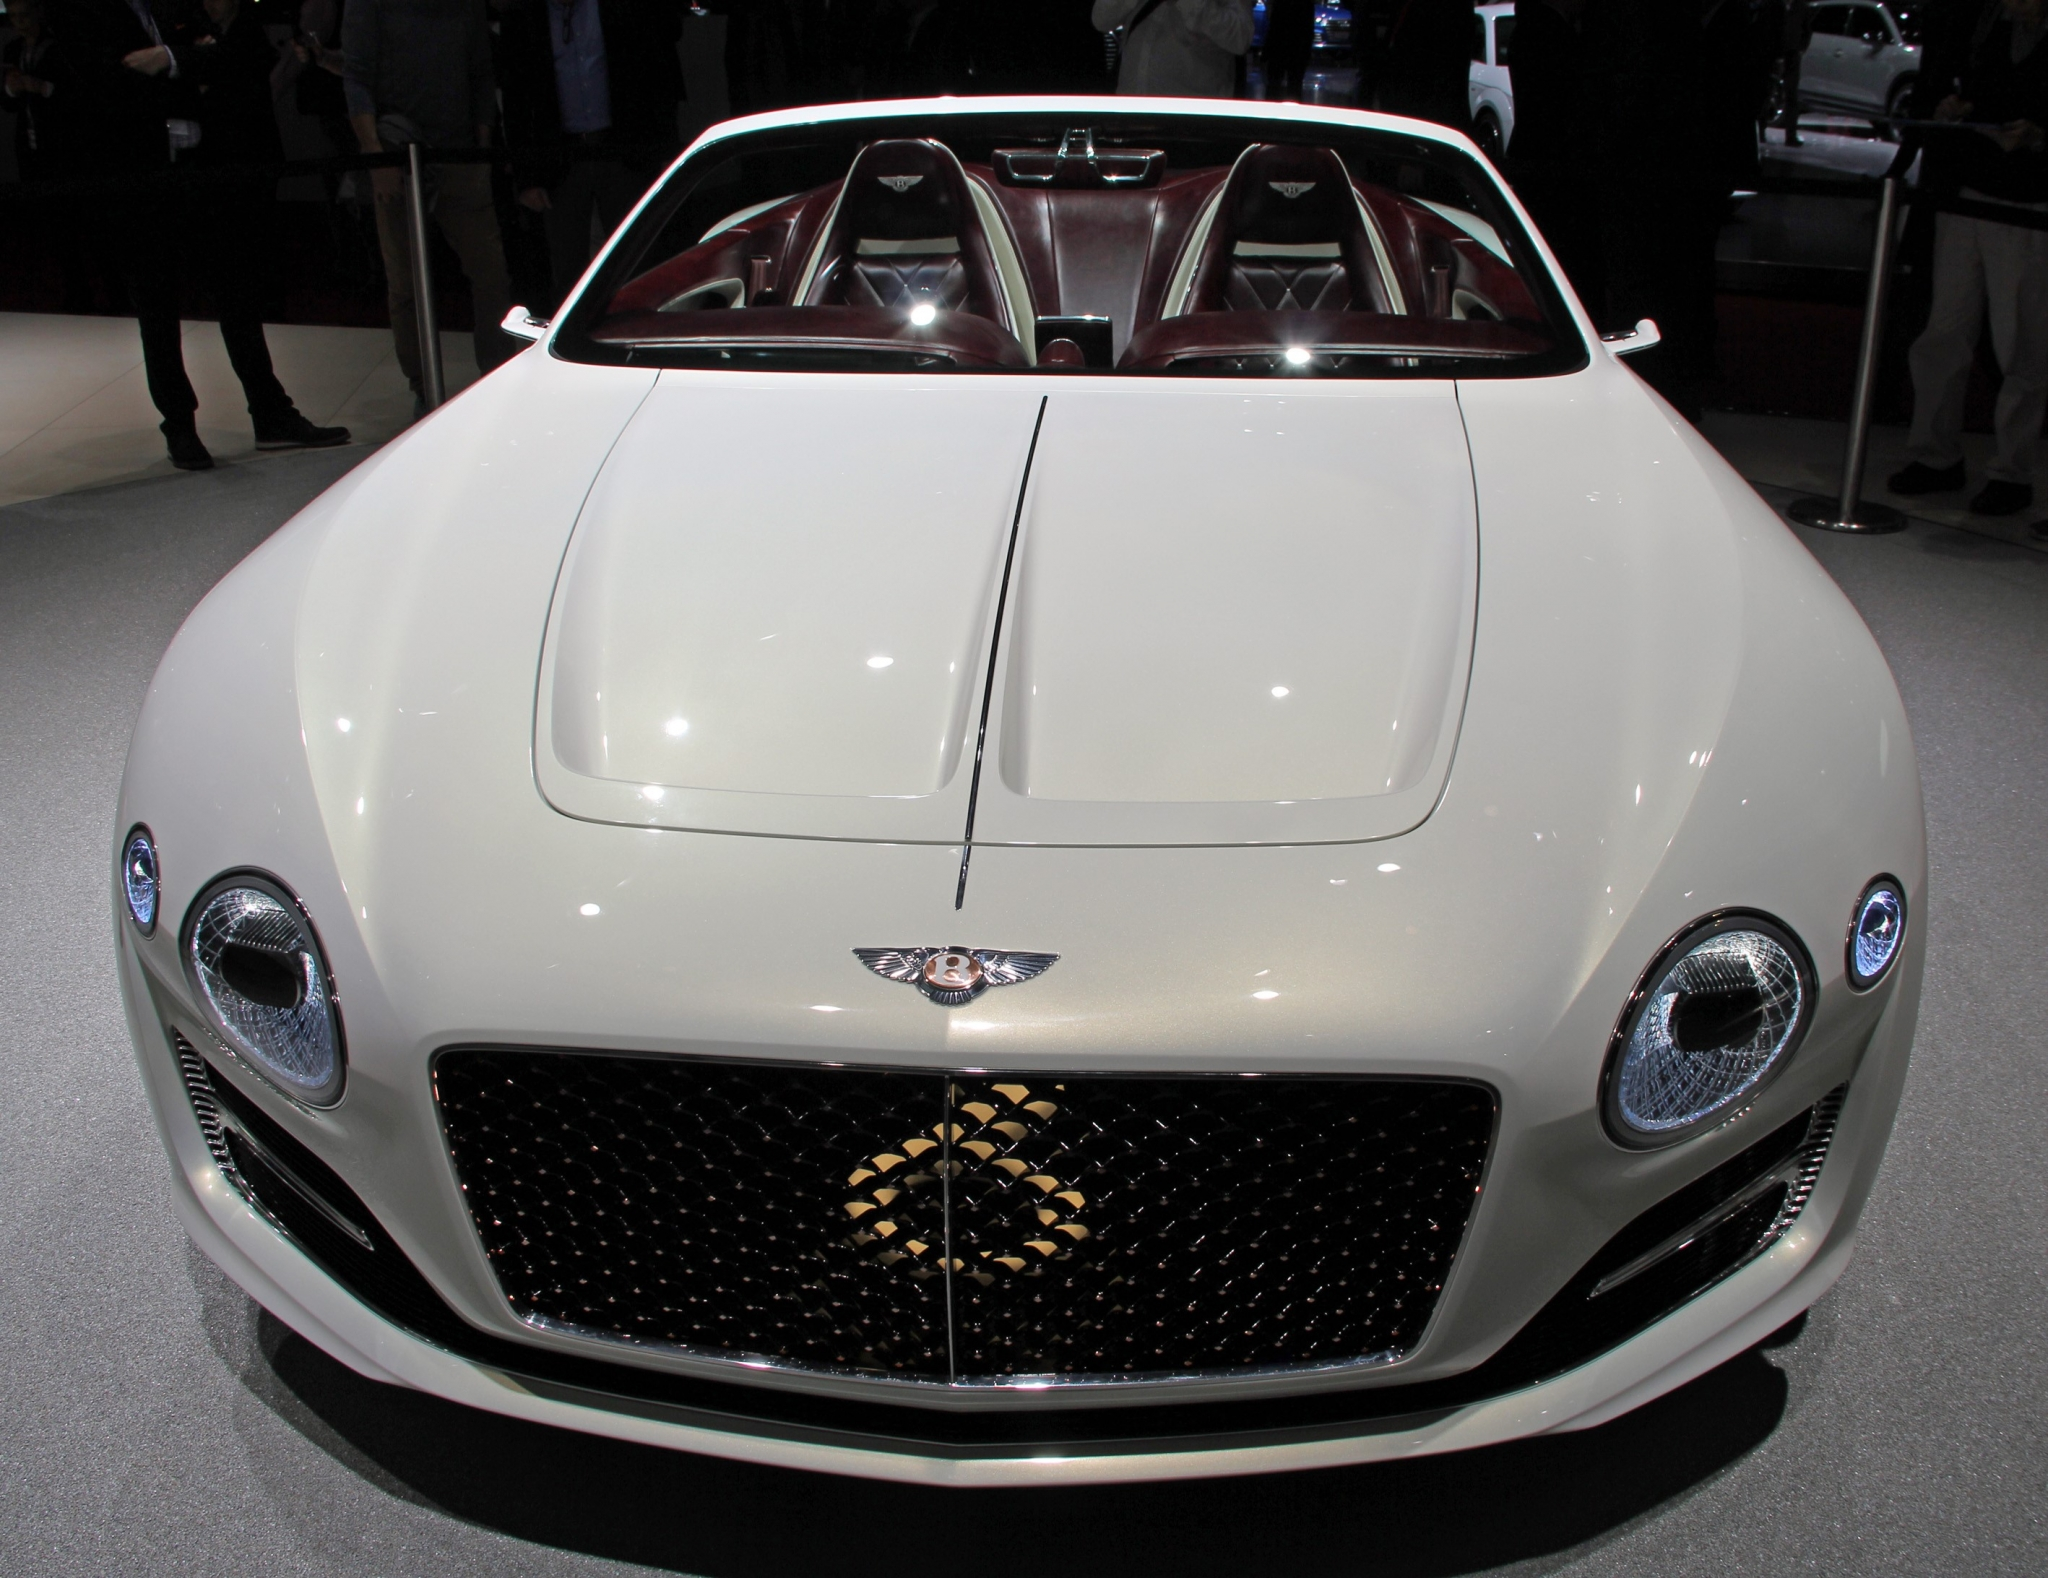 Bentley reveals luxury electric car for those who find Tesla too low-rent